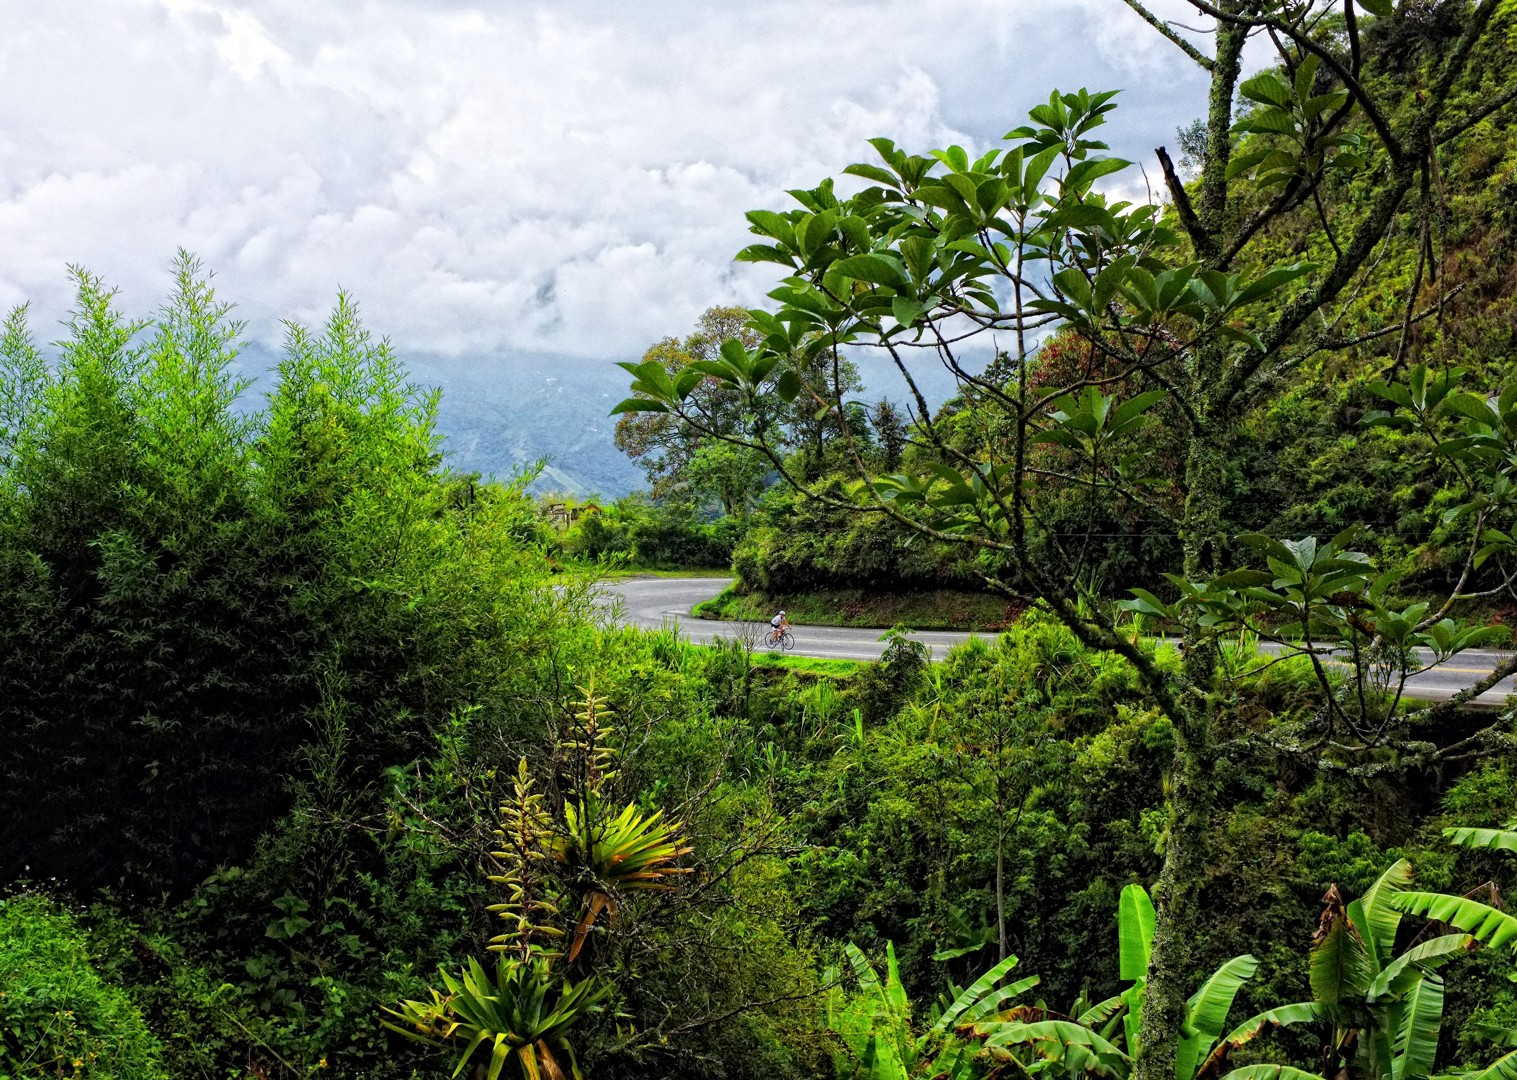 road-cycling-holiday-in-clombia-with-skedaddle.jpg - Colombia - Emerald Mountains - Road Cycling